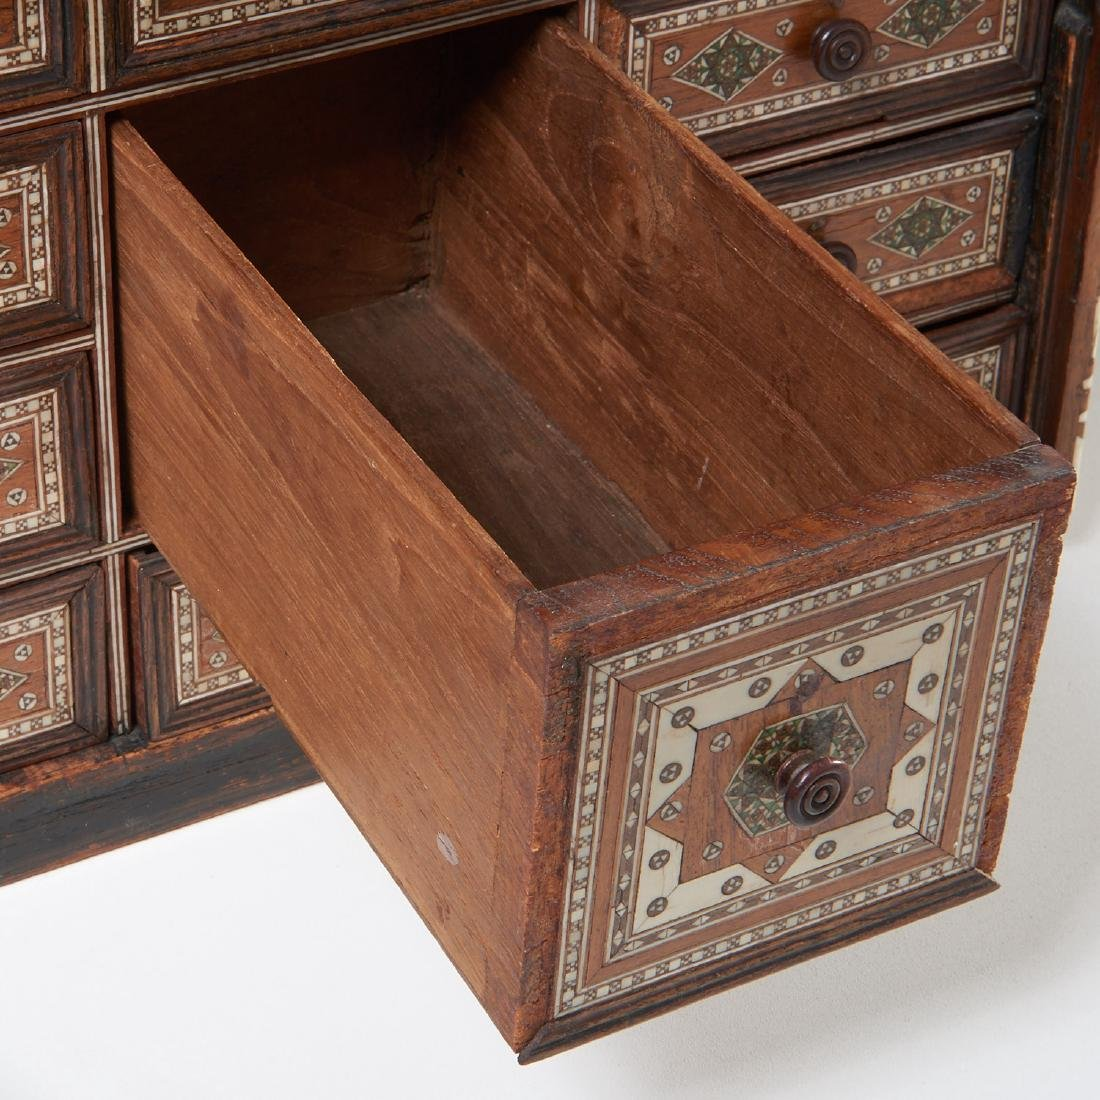 Damascus inlaid tabletop chest of drawers - 4